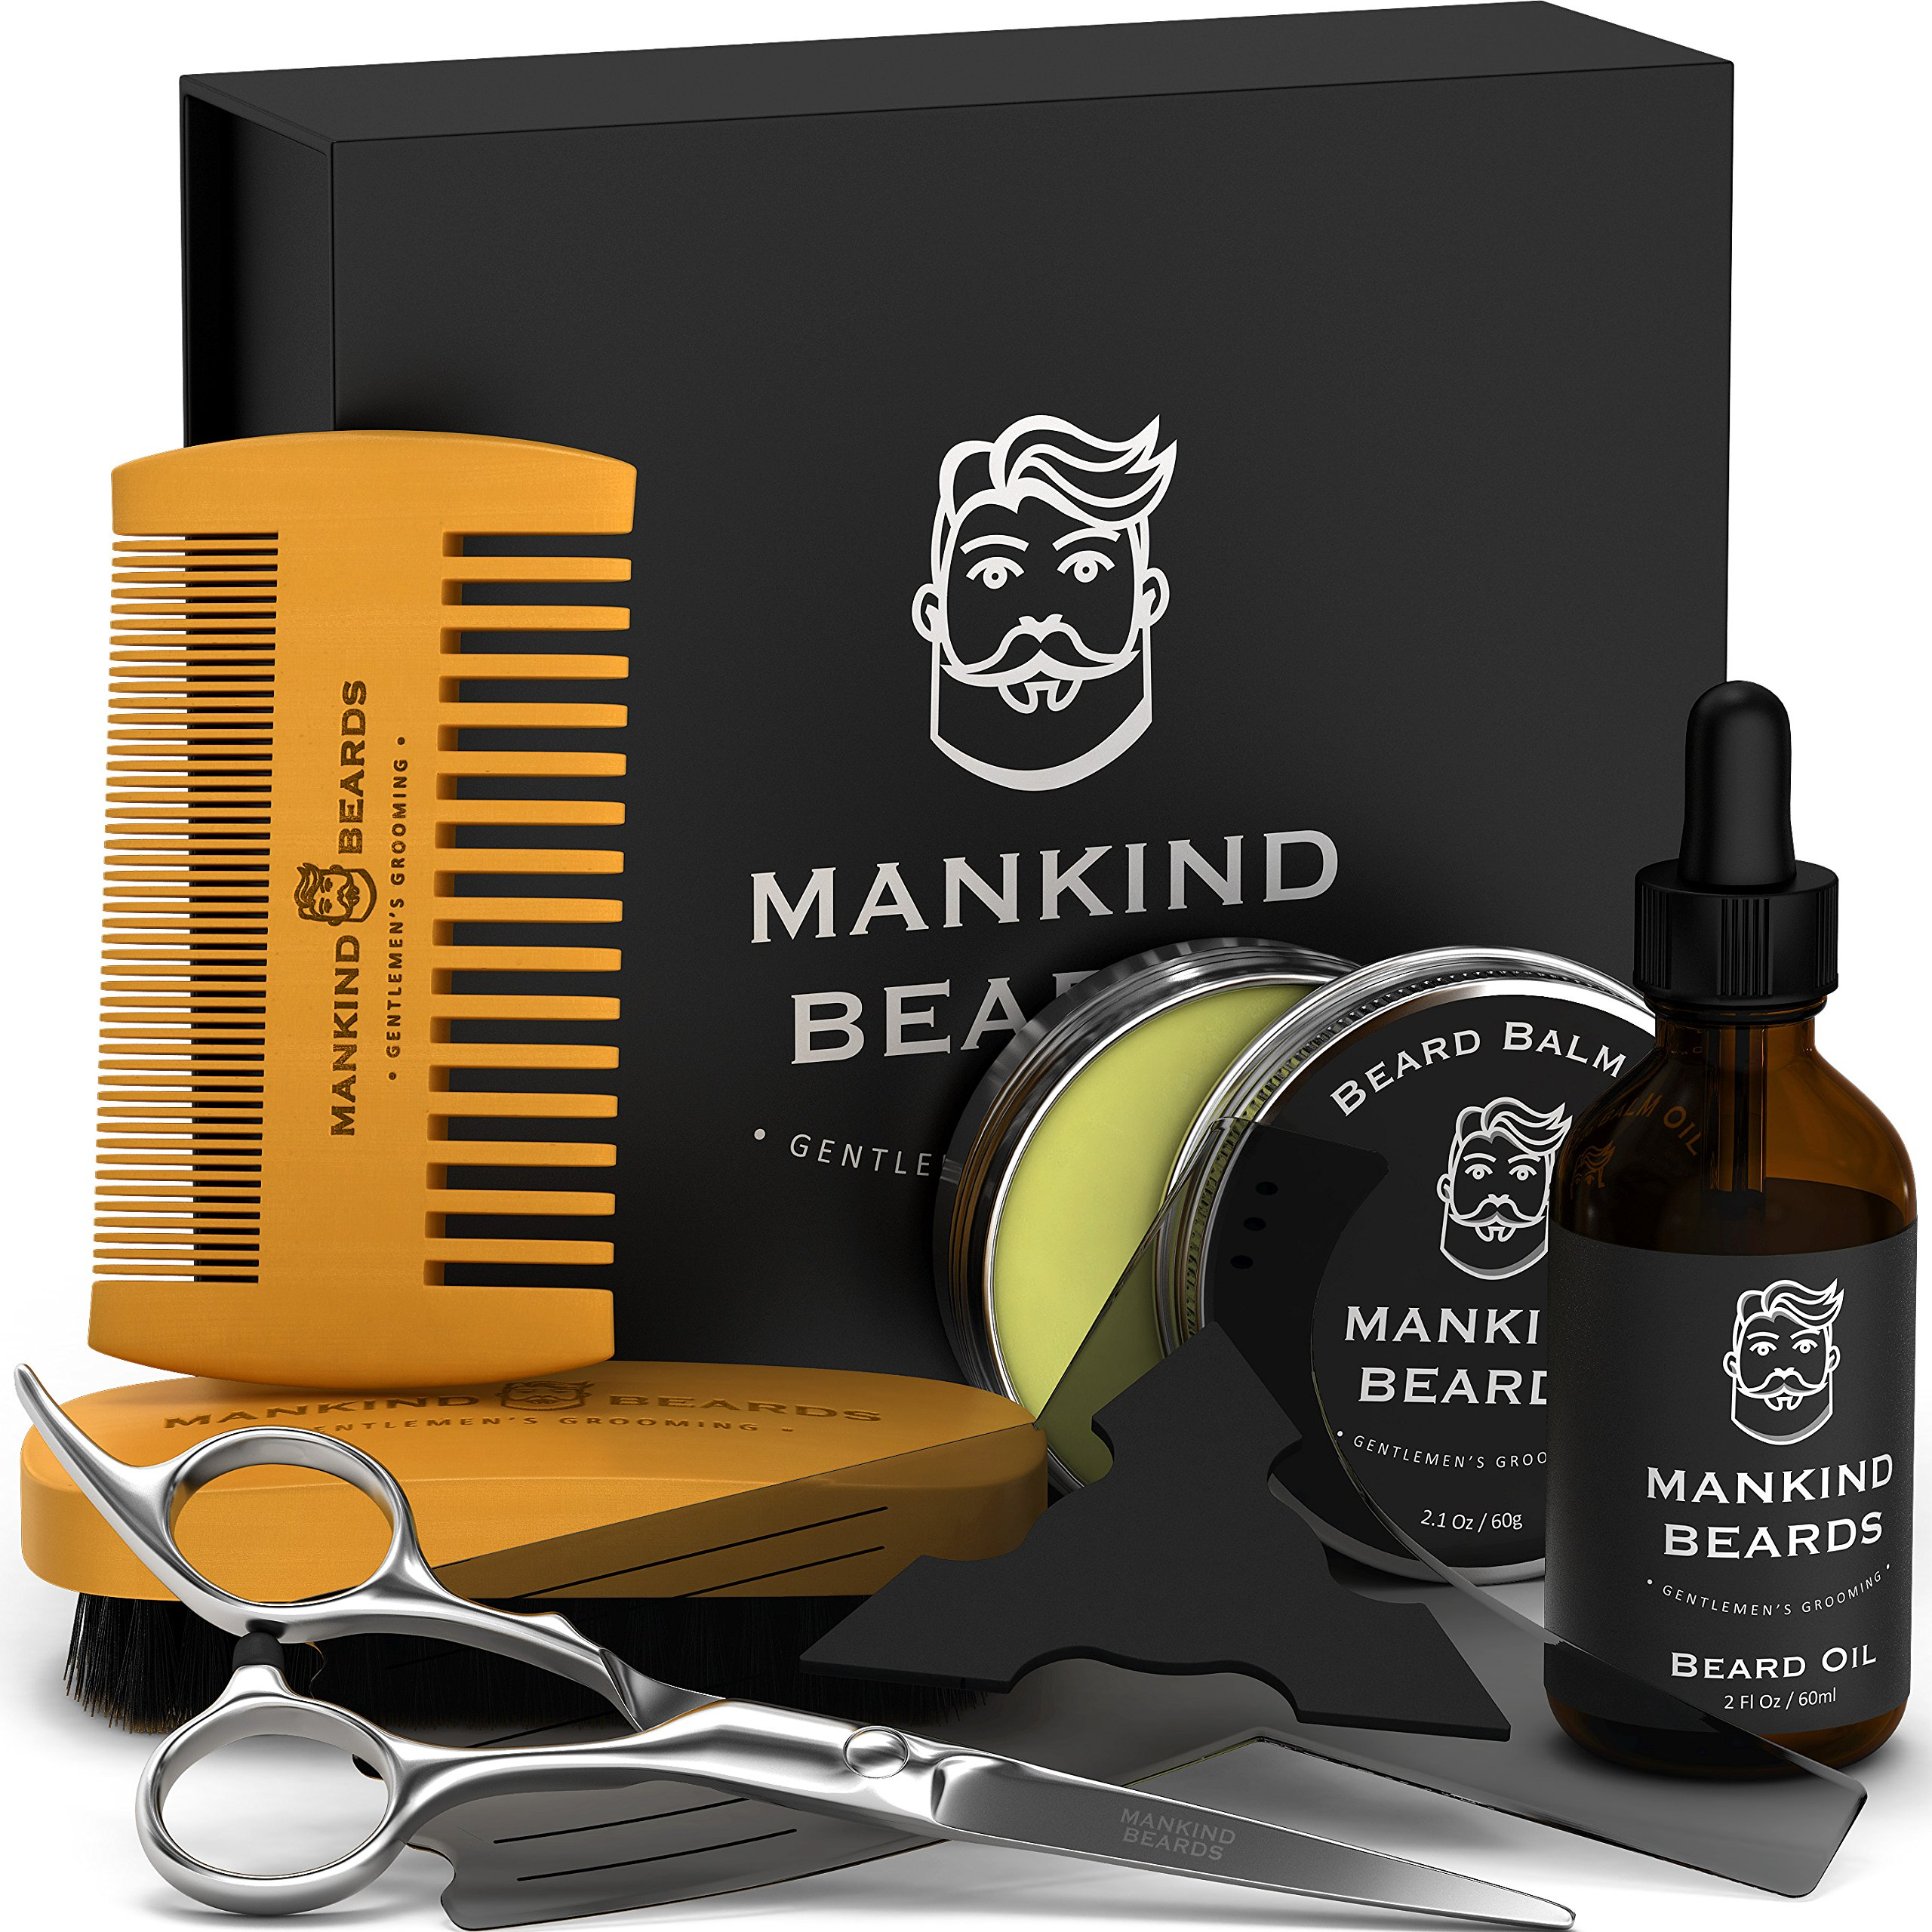 Complete Gentleman's Beard Kit - 7 Piece Luxury Beard Grooming Kit - Create The Perfect Look With Mankind Beards – The Brand Of Excellence